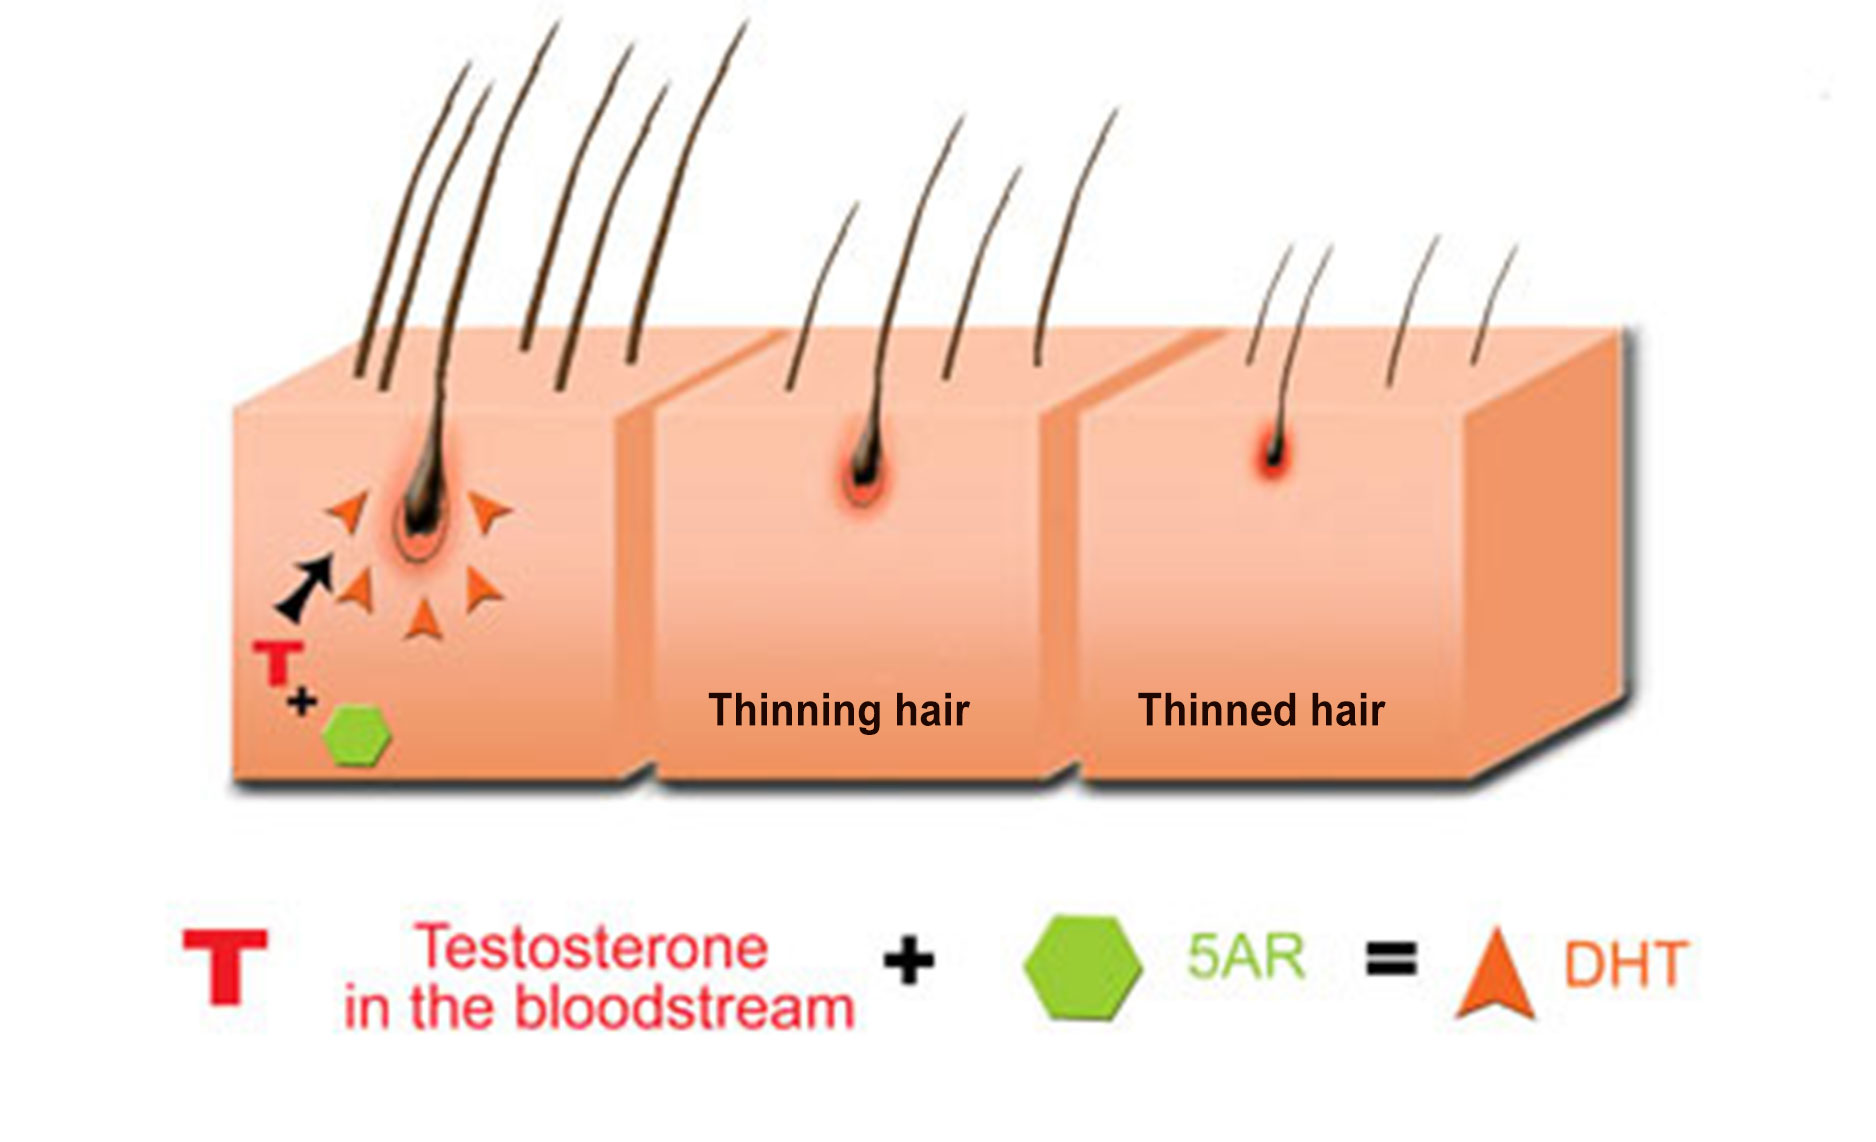 About hair loss > DHT: how does it cause hereditary hair loss?